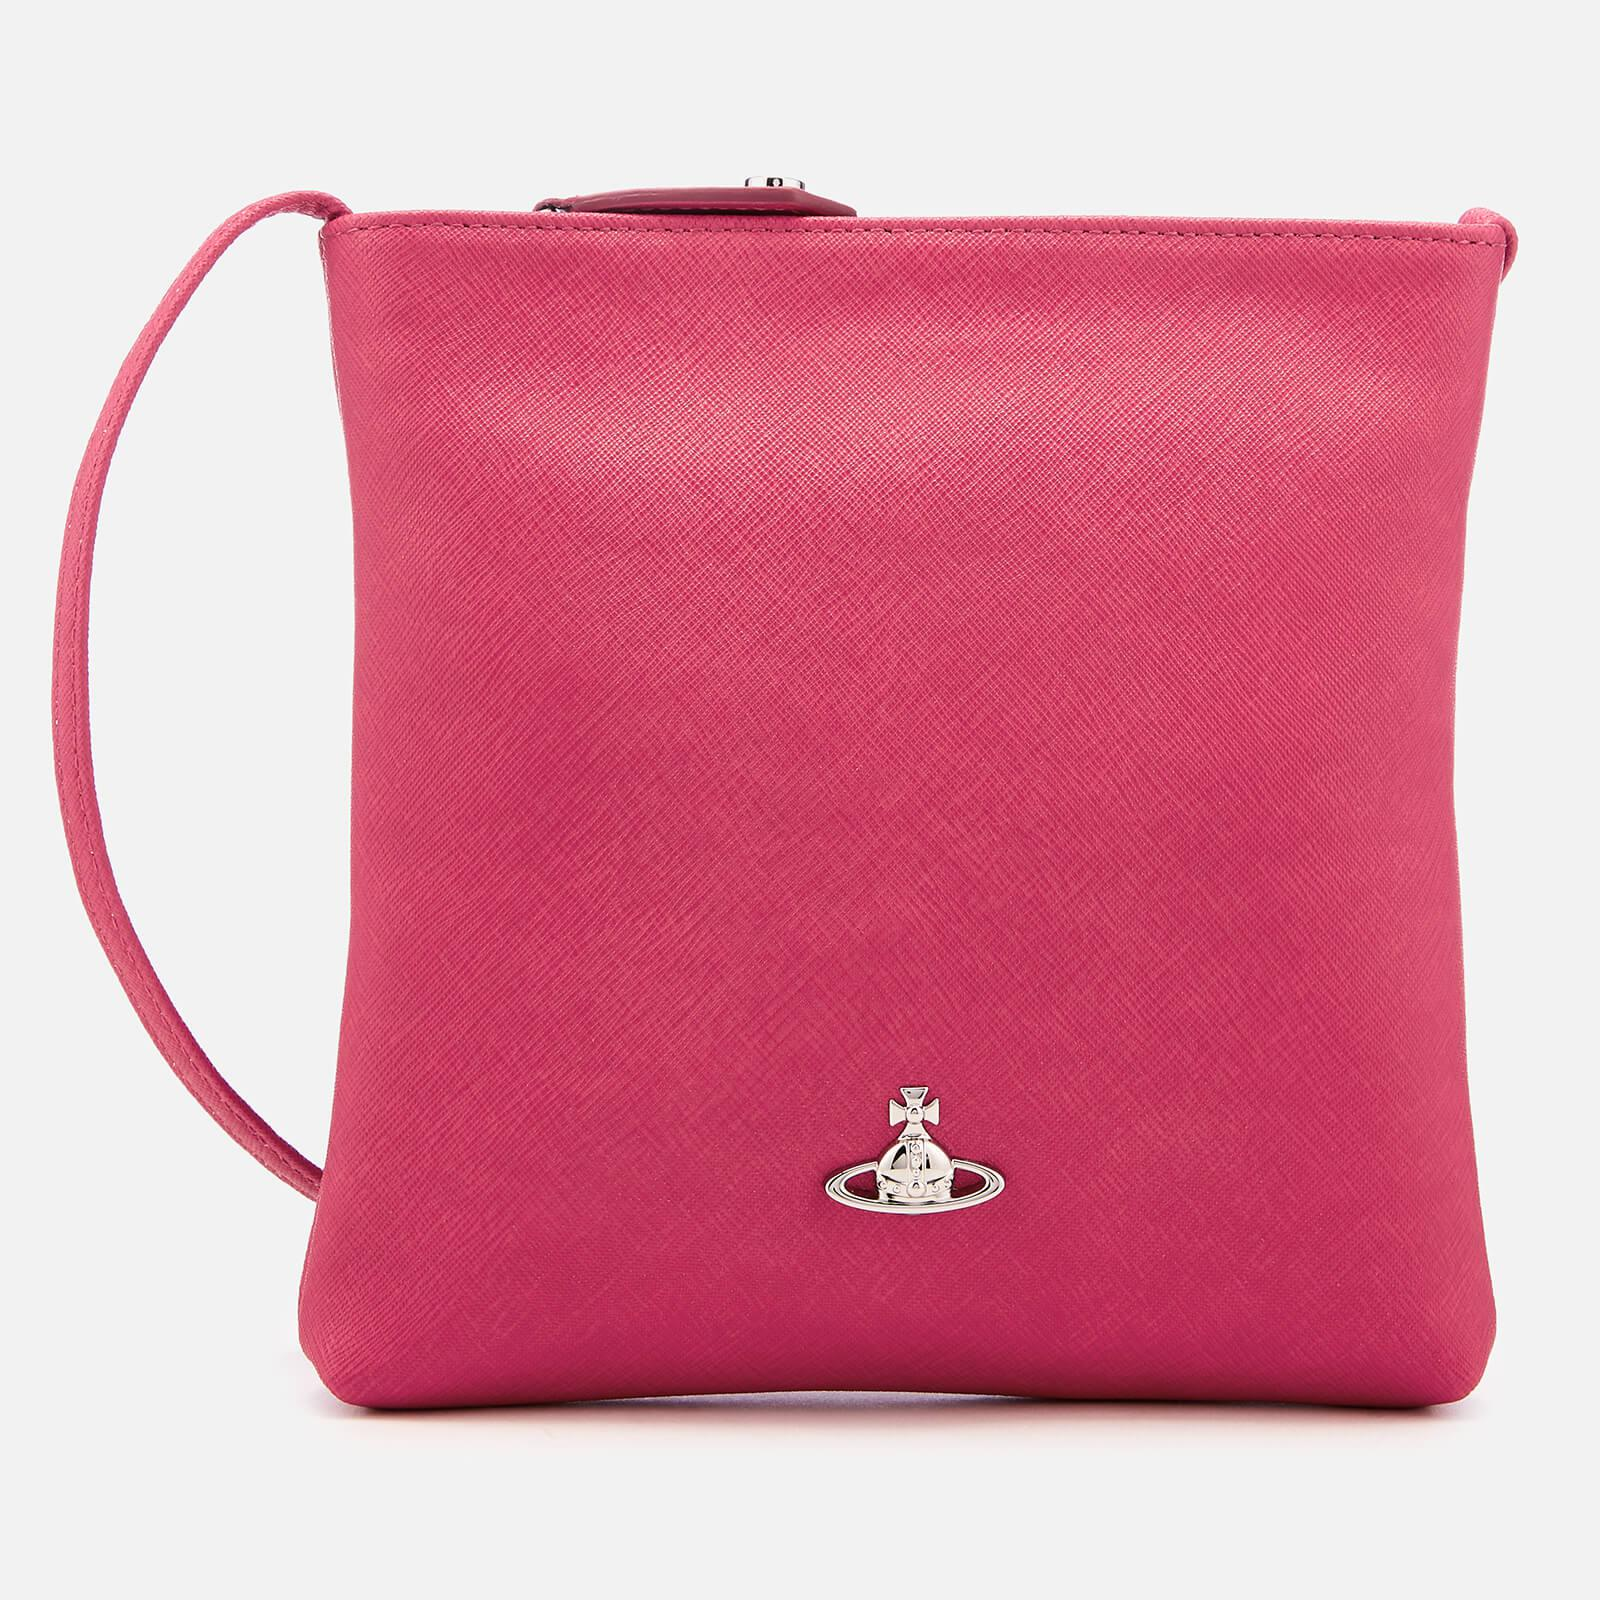 7646e1389d79 Vivienne Westwood Victoria Square Cross Body Bag in Pink - Lyst